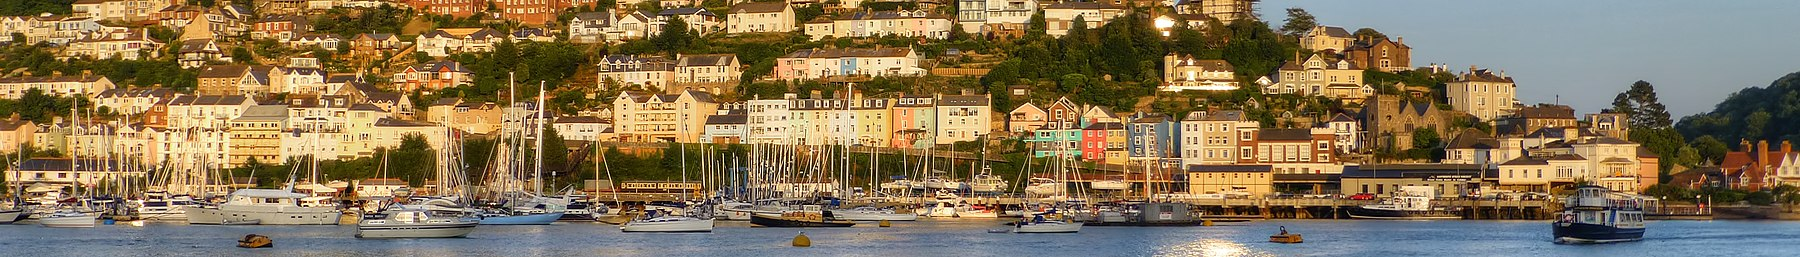 Kingswear in the evening